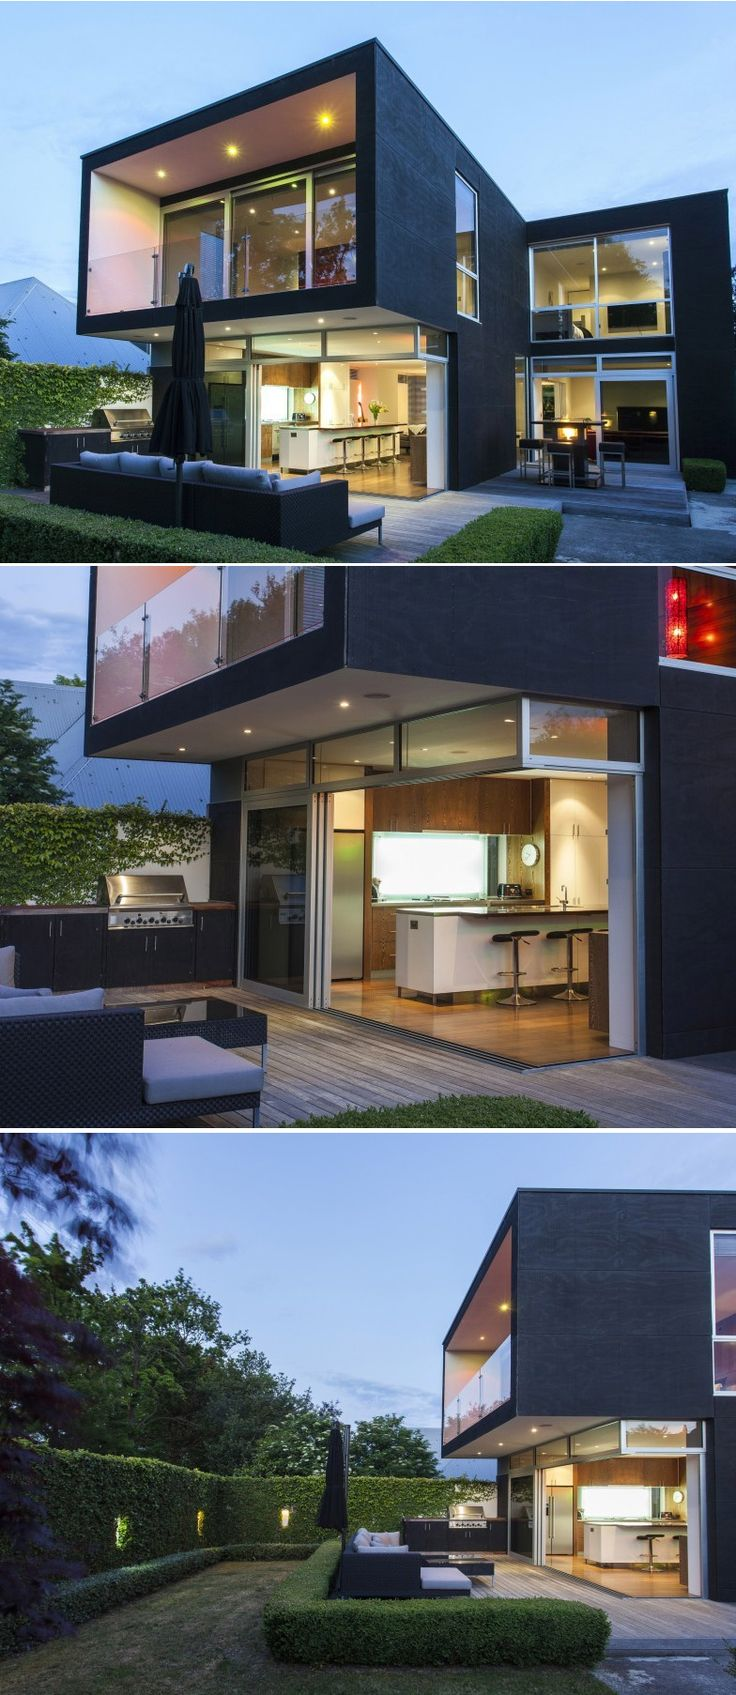 1000+ ideas about Ultra Modern Homes on Pinterest ustic modern ... - ^